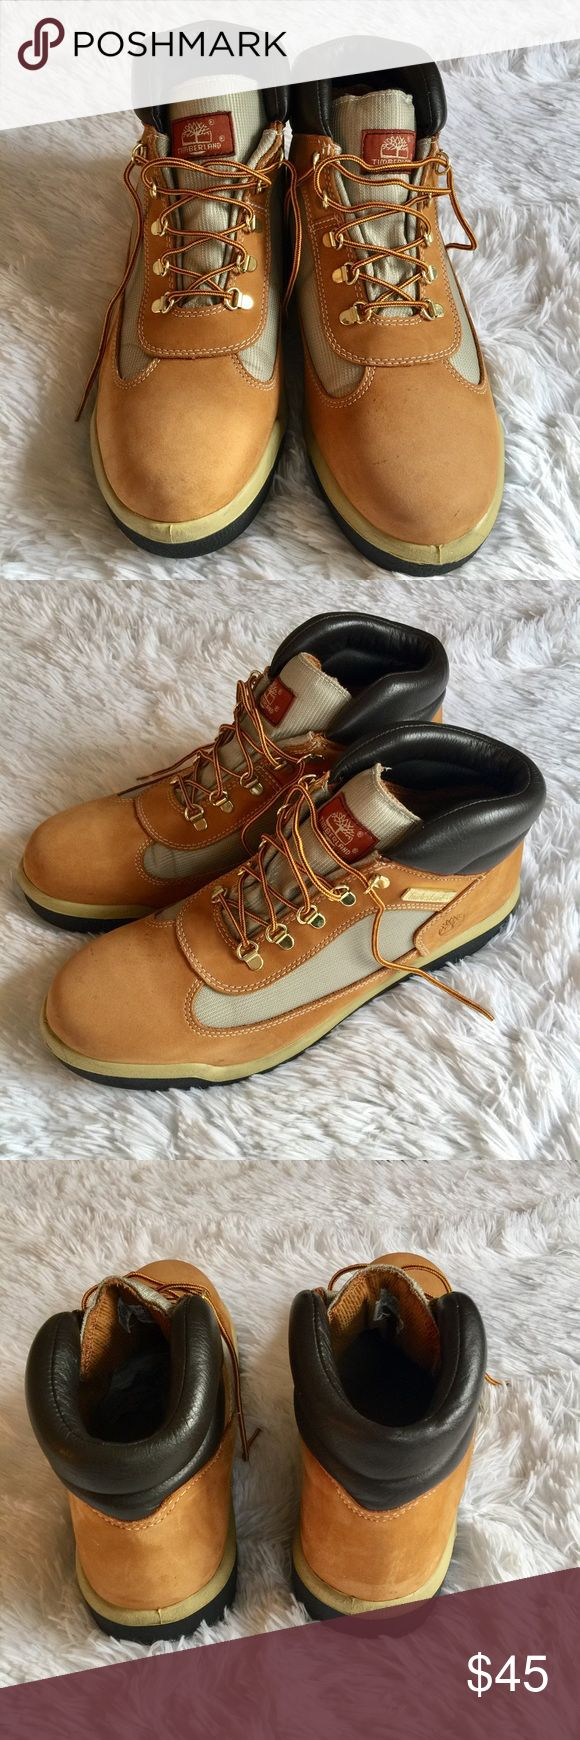 Mens Timberland Boots These boots have tons of life left. Cosmetically they have signs of wear but still look pretty good. Please enlarge photos to see wear. Priced due to wear. Timberland Shoes Boots